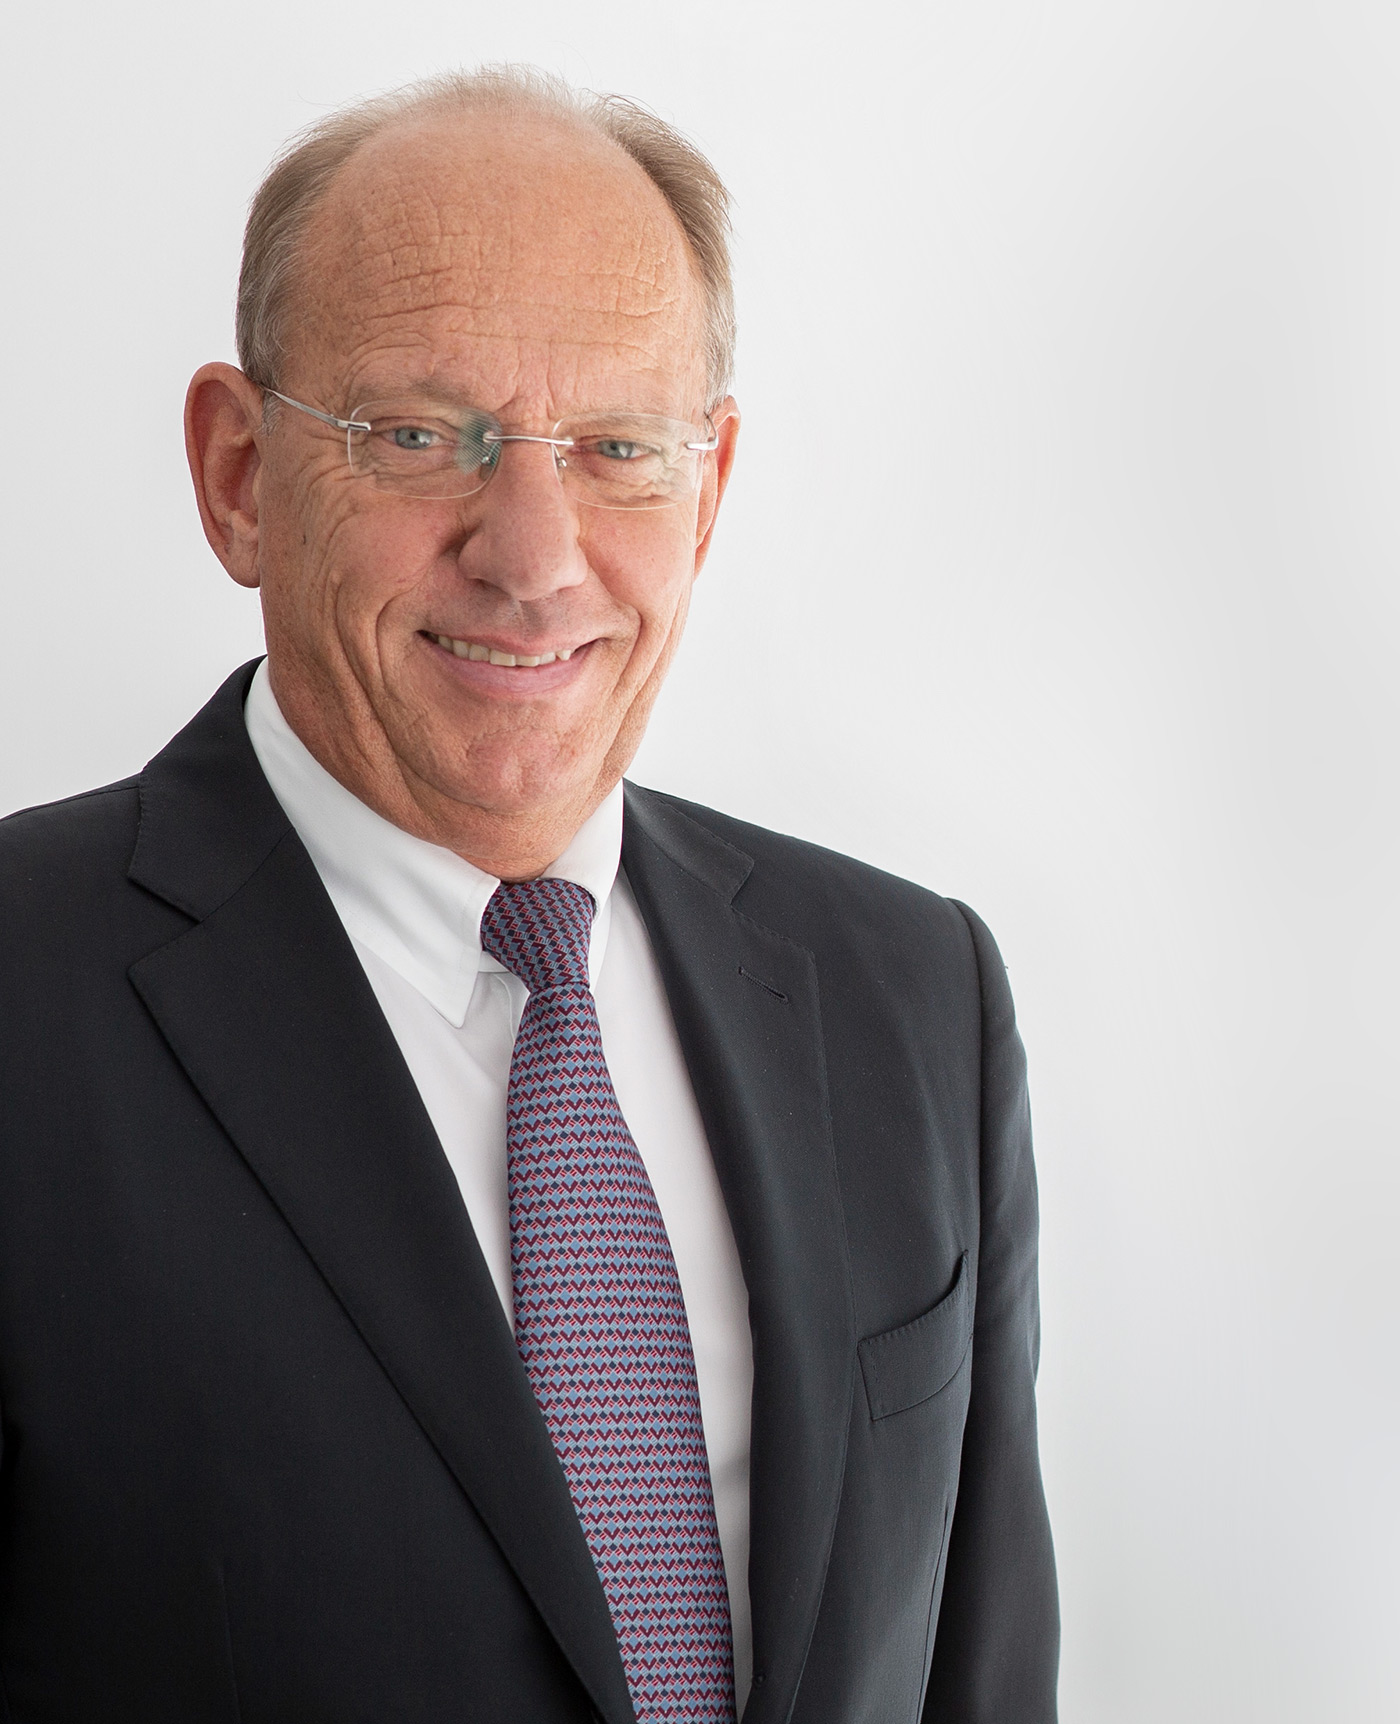 Frank Obermann, Managing Partner